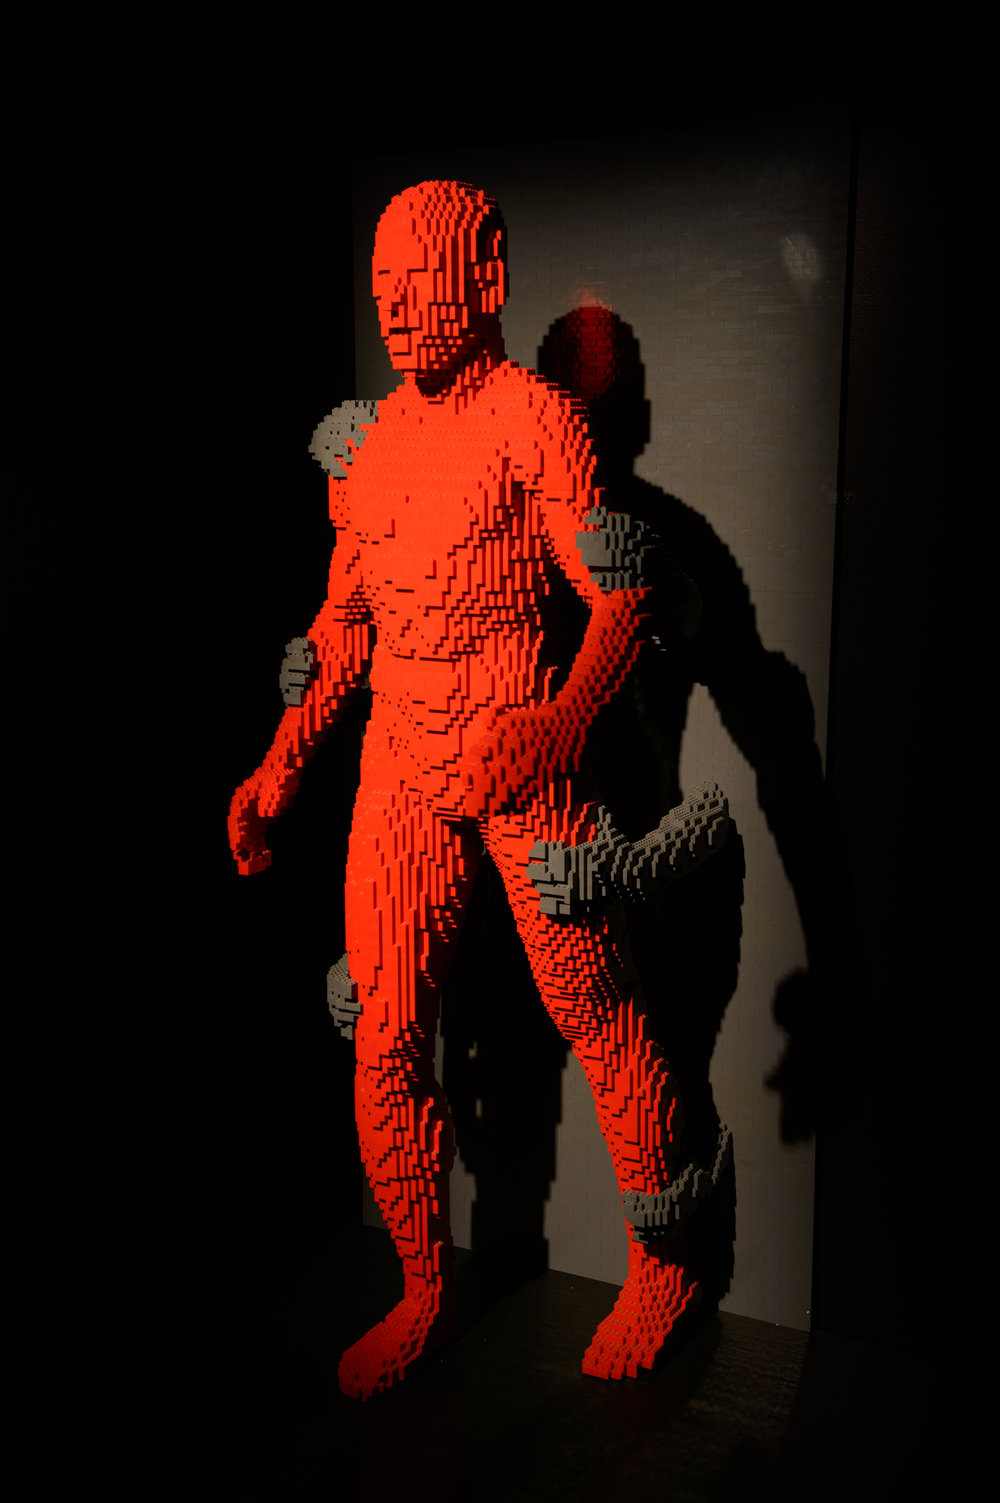 the-art-of-the-brick-credito-divulgacao-9.jpg